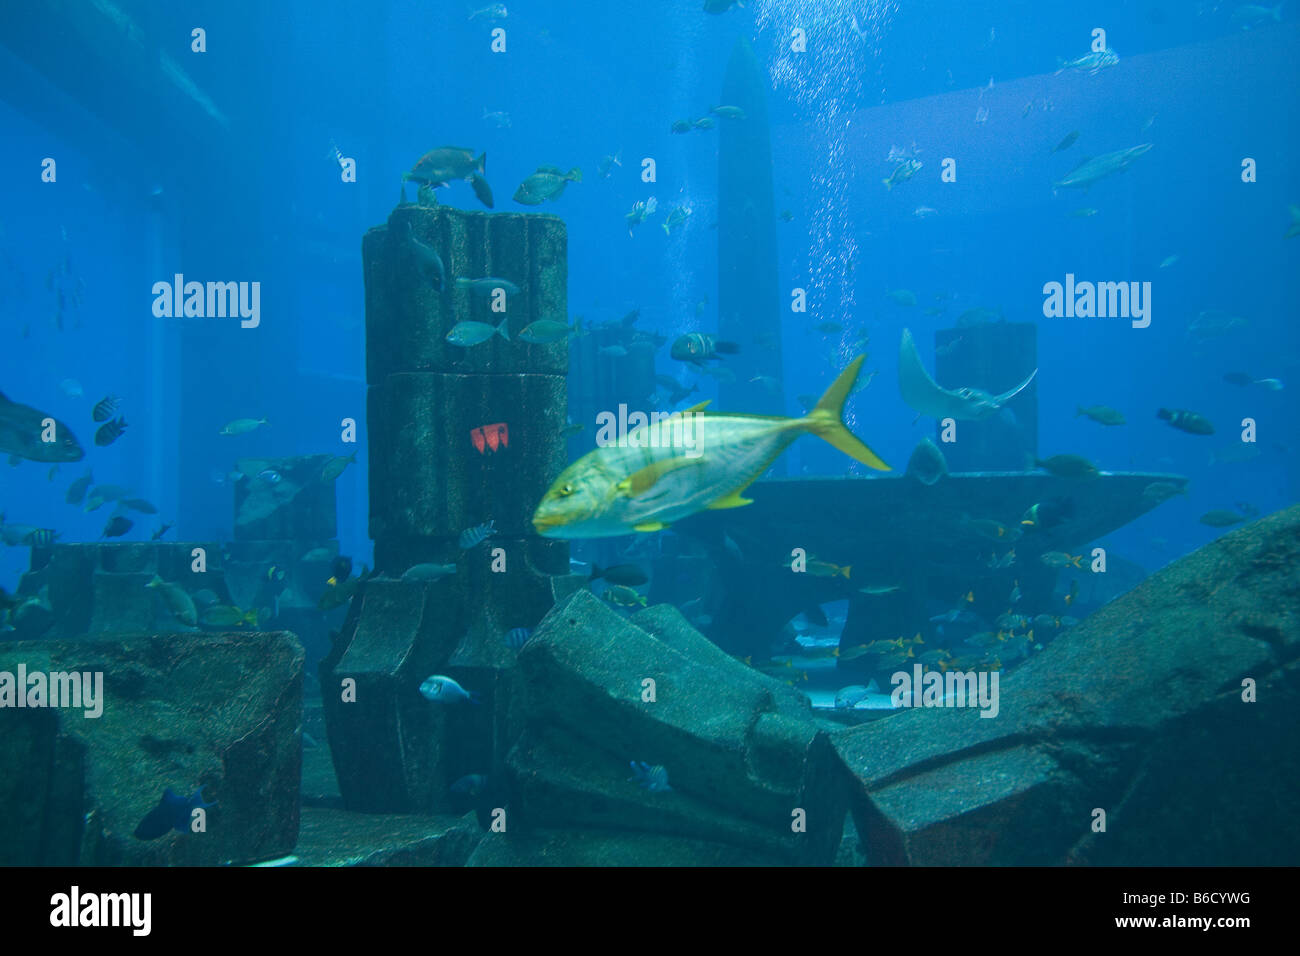 United Arab Emirates Dubai Palm Jumeira Atlantis Aquarium - Stock Image